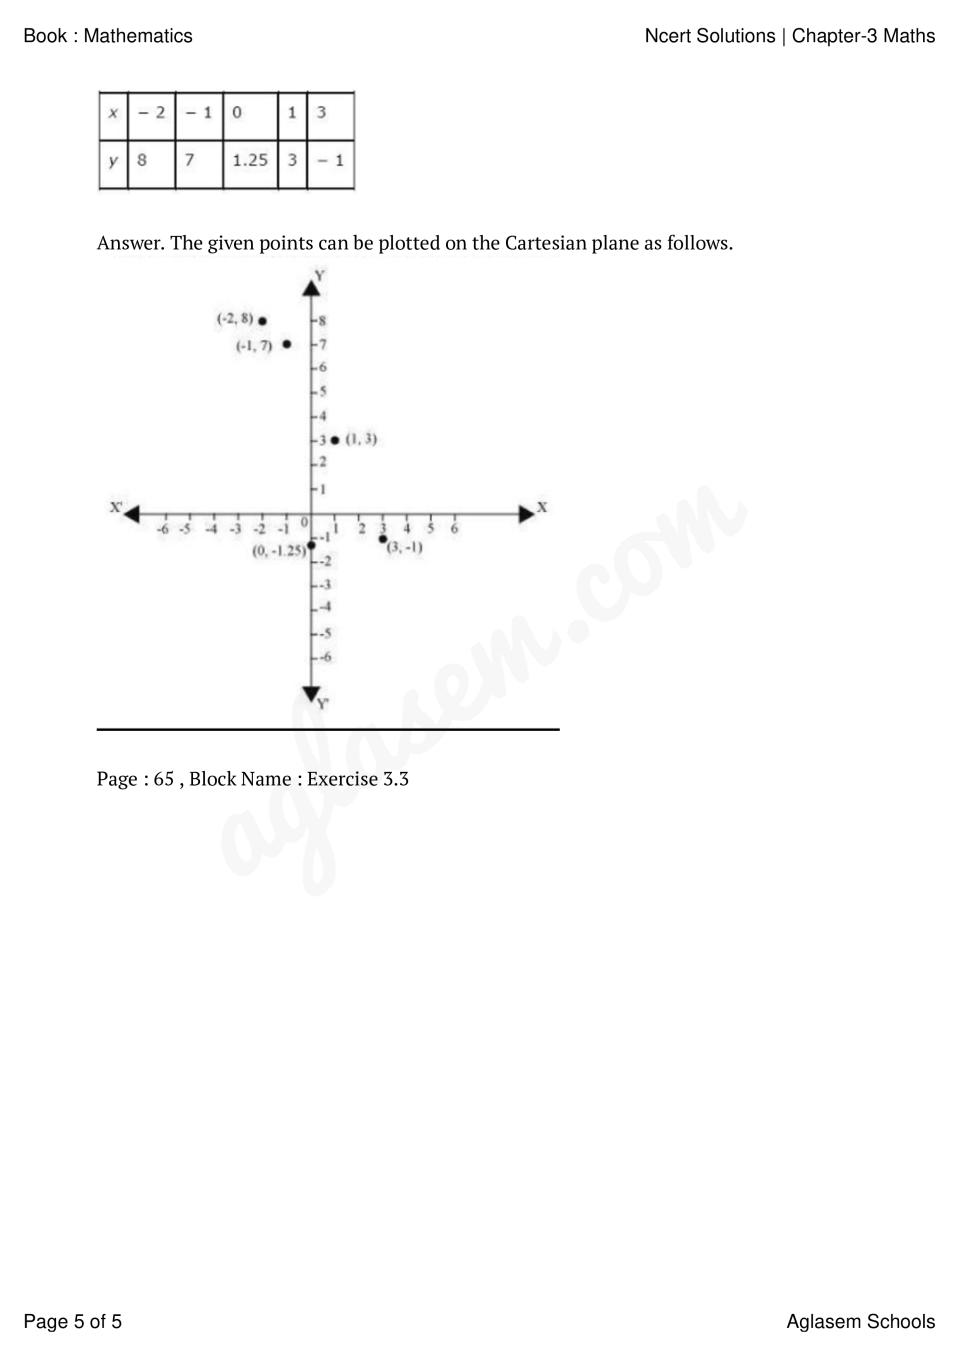 NCERT Solutions for Class 9 Maths Chapter 3 Coordinate